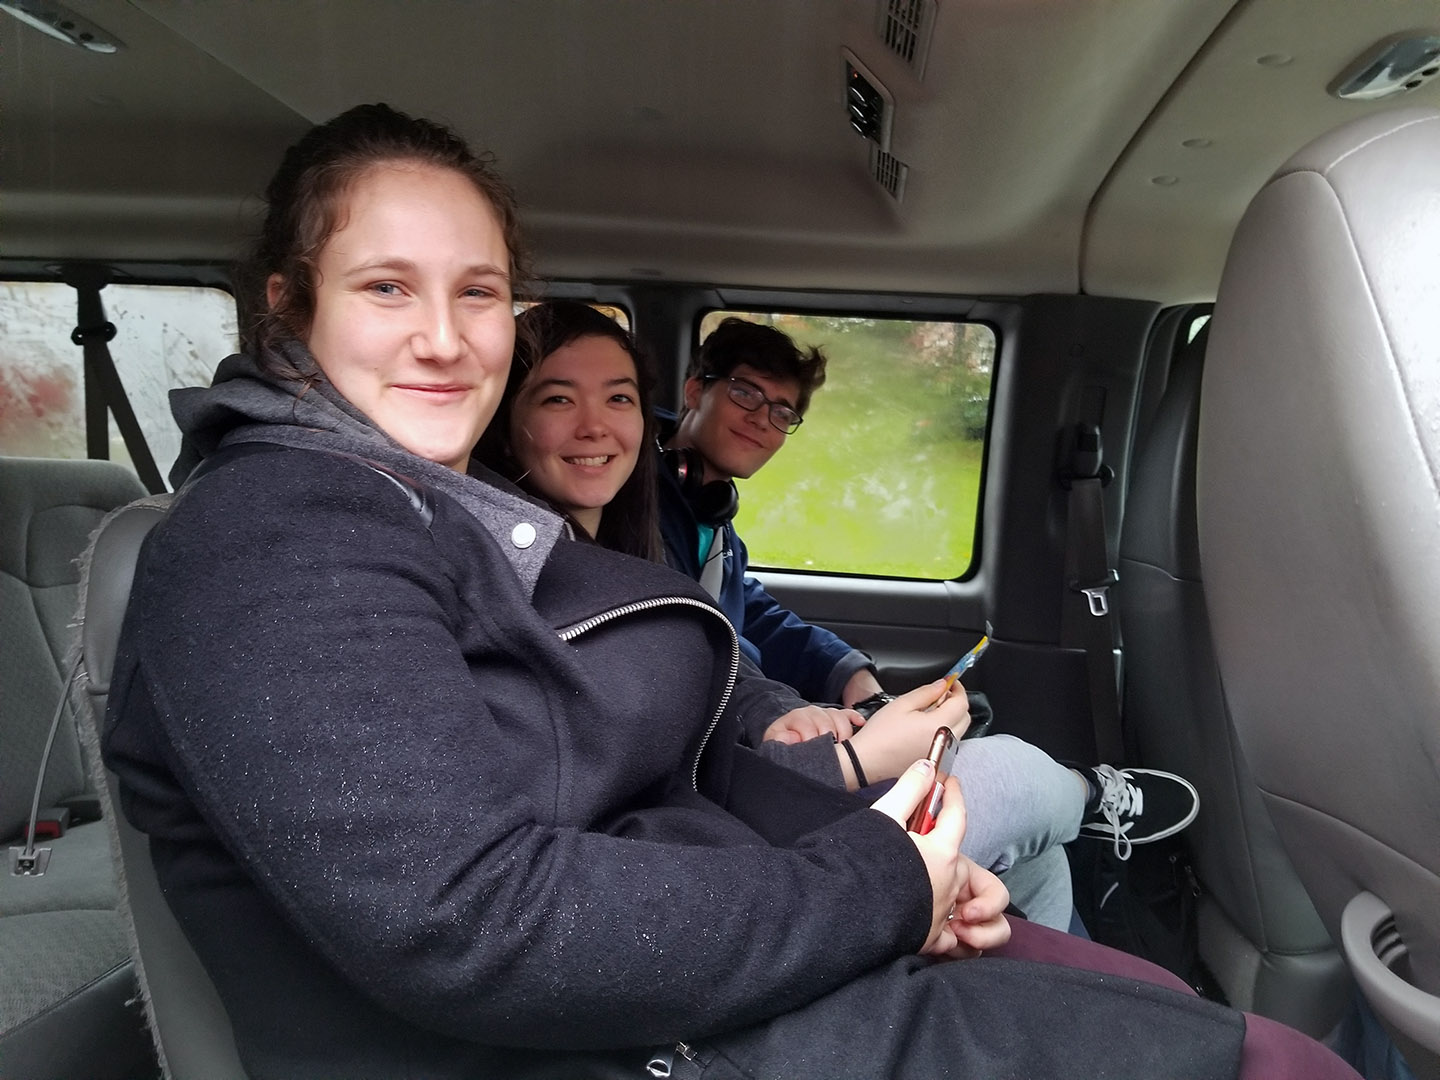 Bard students took the shuttle to the polls in Barrytown.